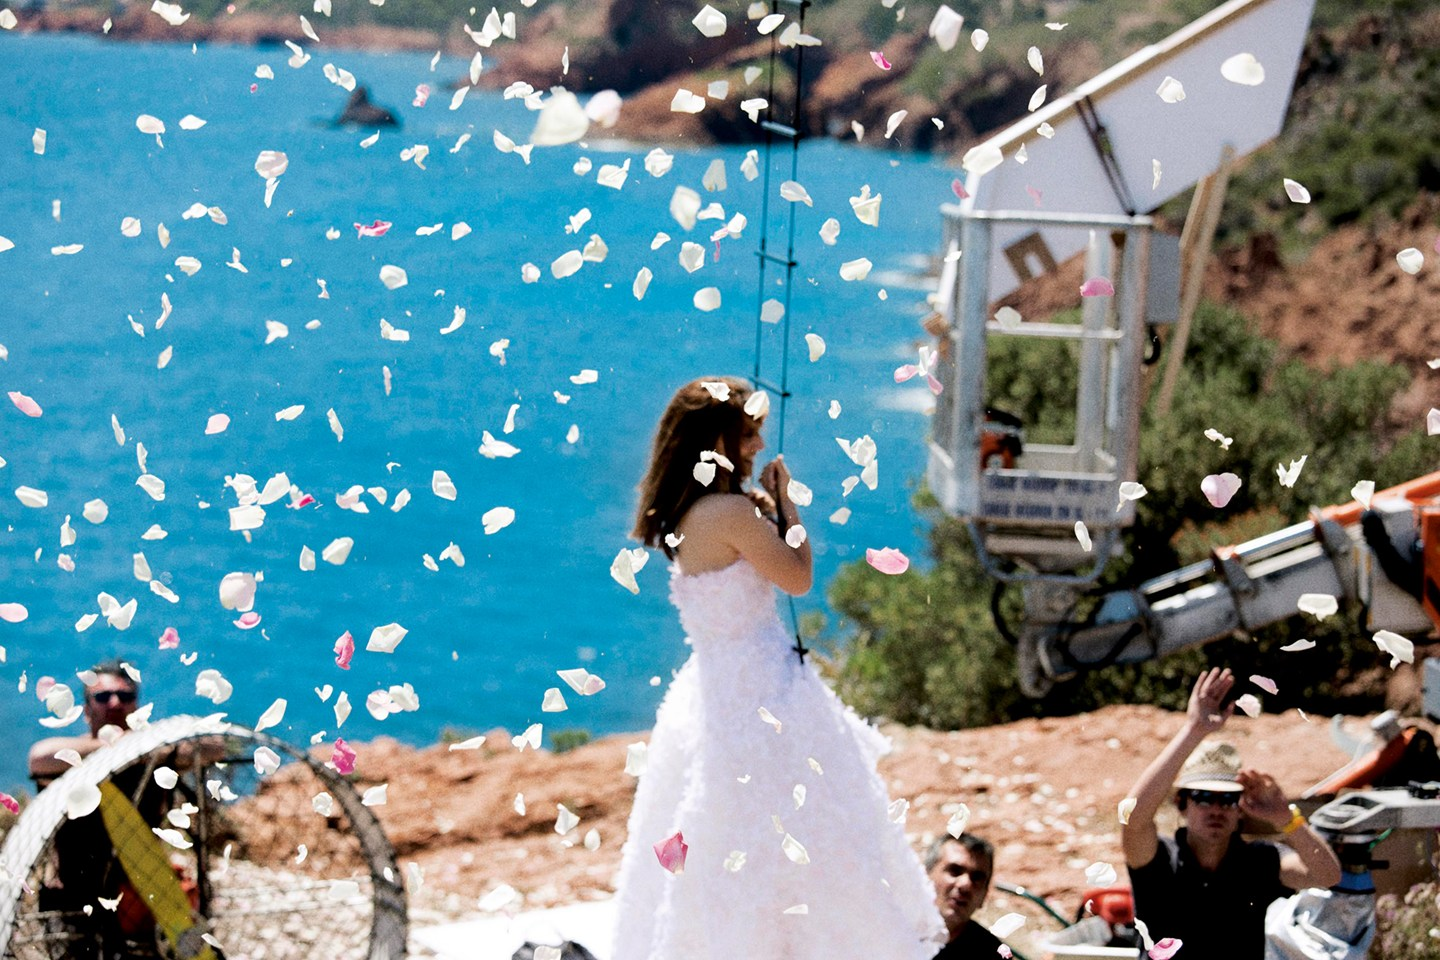 Natalie Portman Runaway Bride at Miss Dior | How to Avoid? #ITISMISSACTUALLY